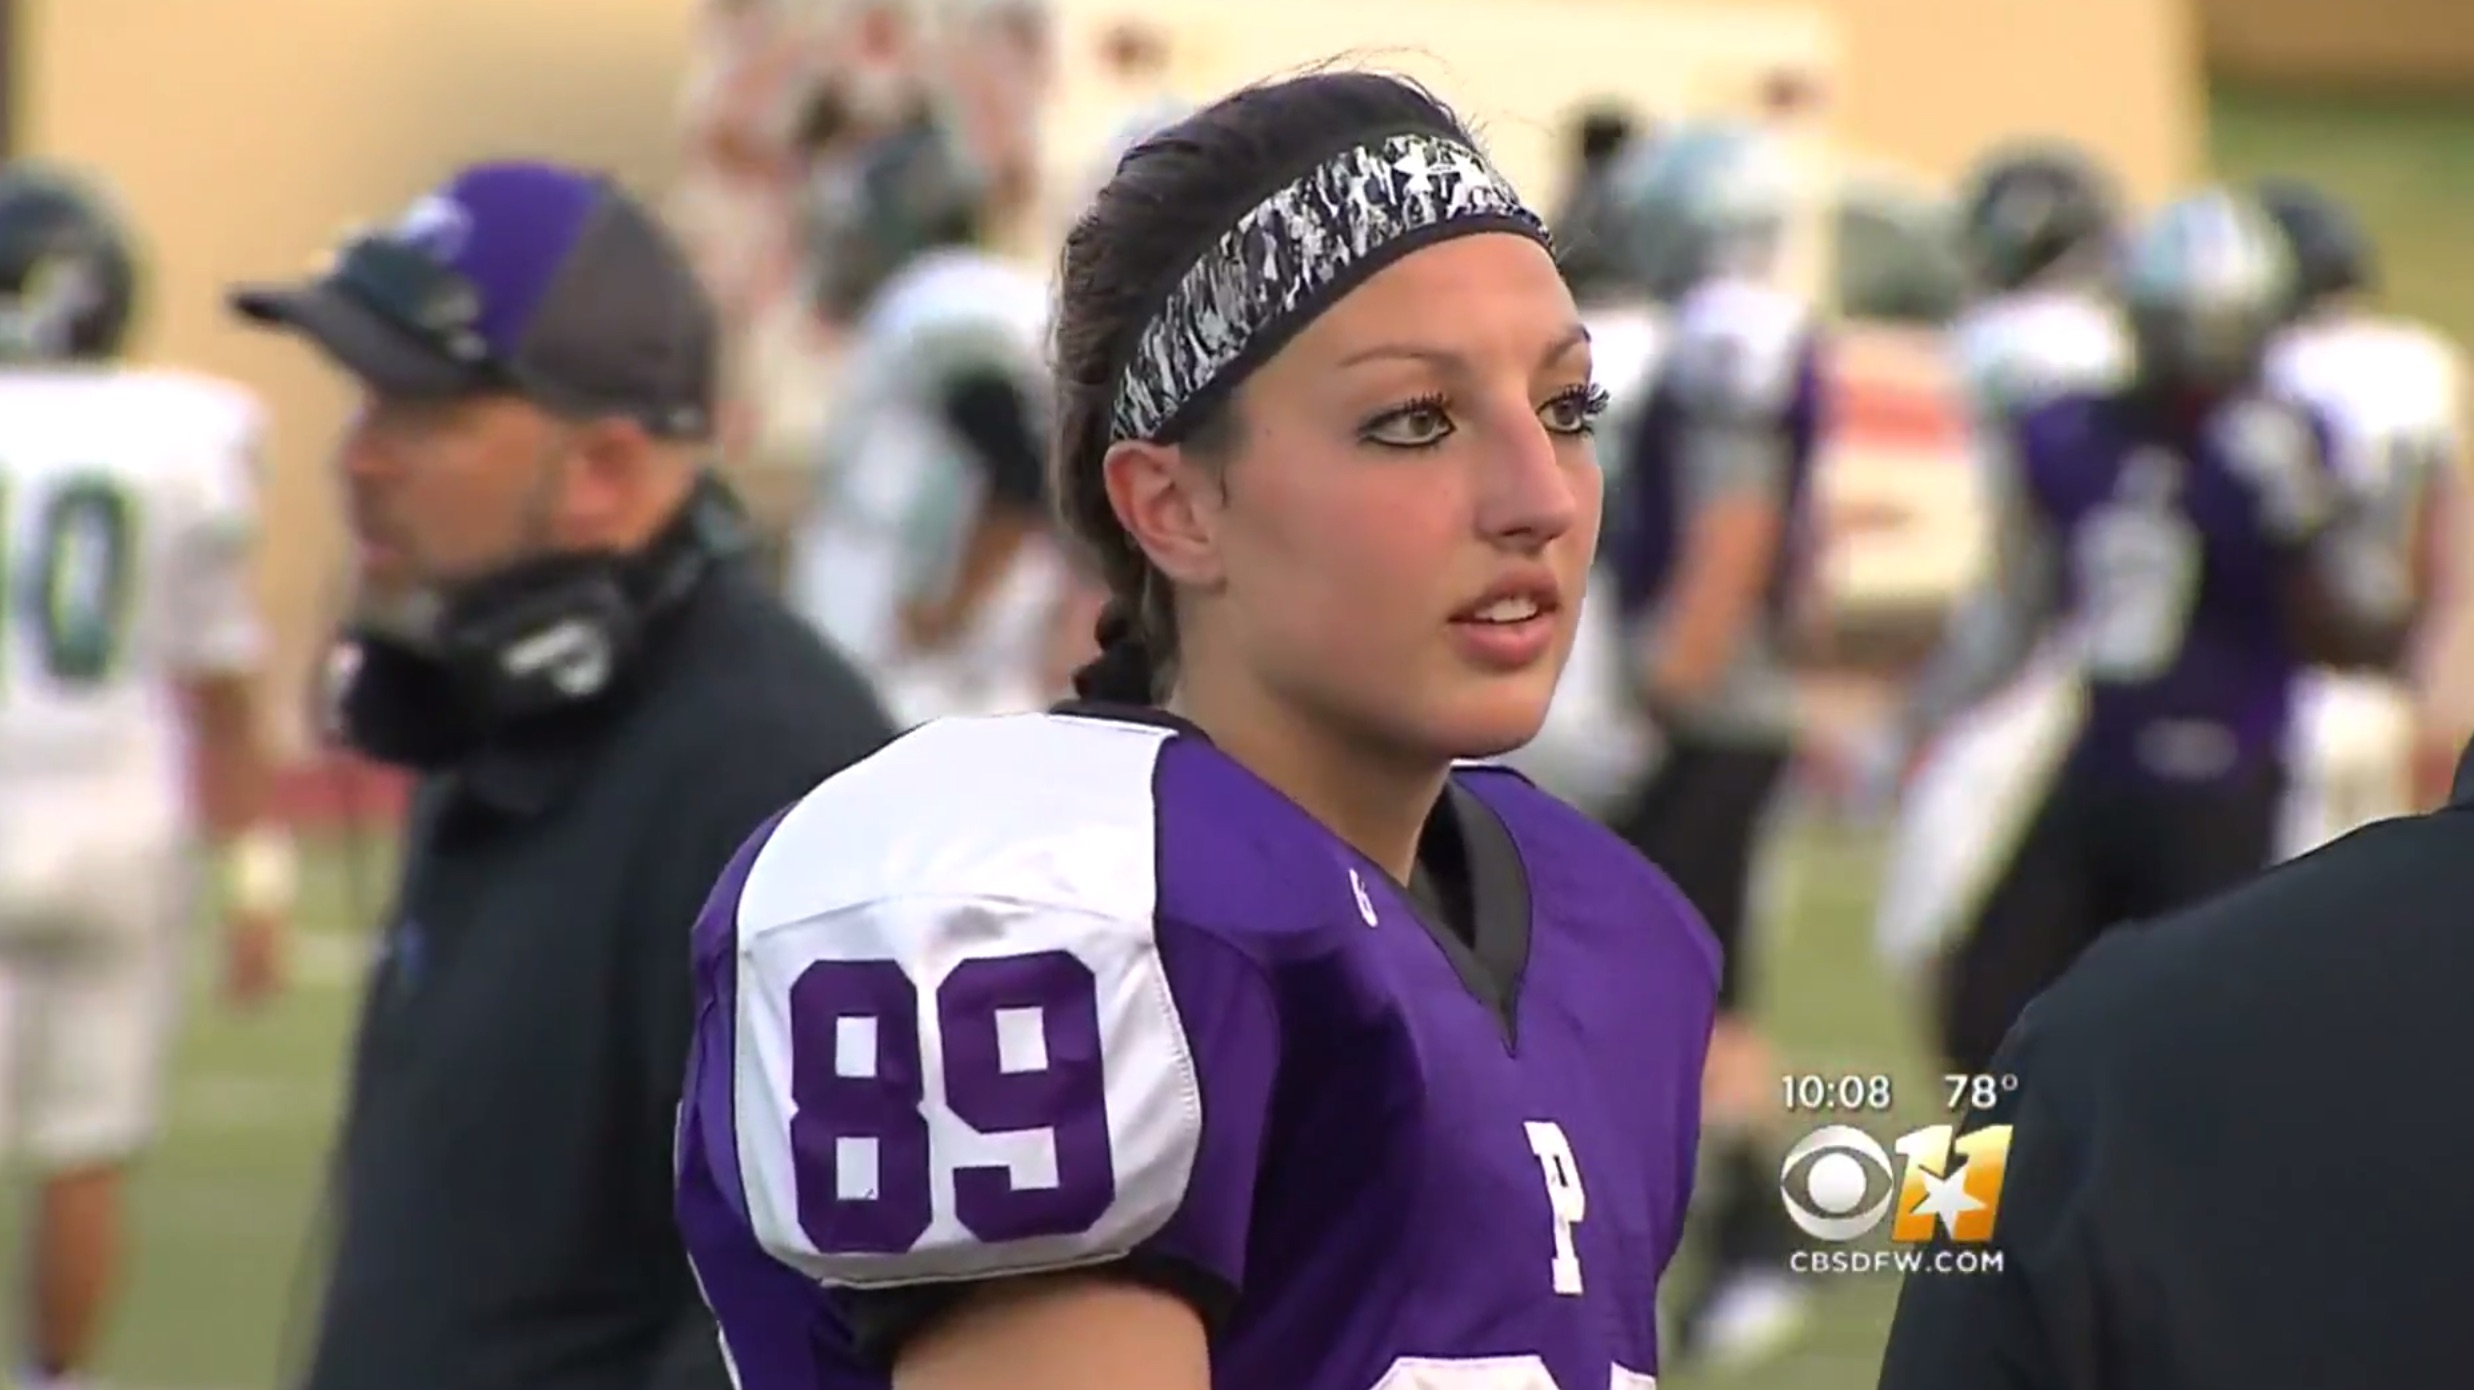 This girl is making history as a member of her high school football team